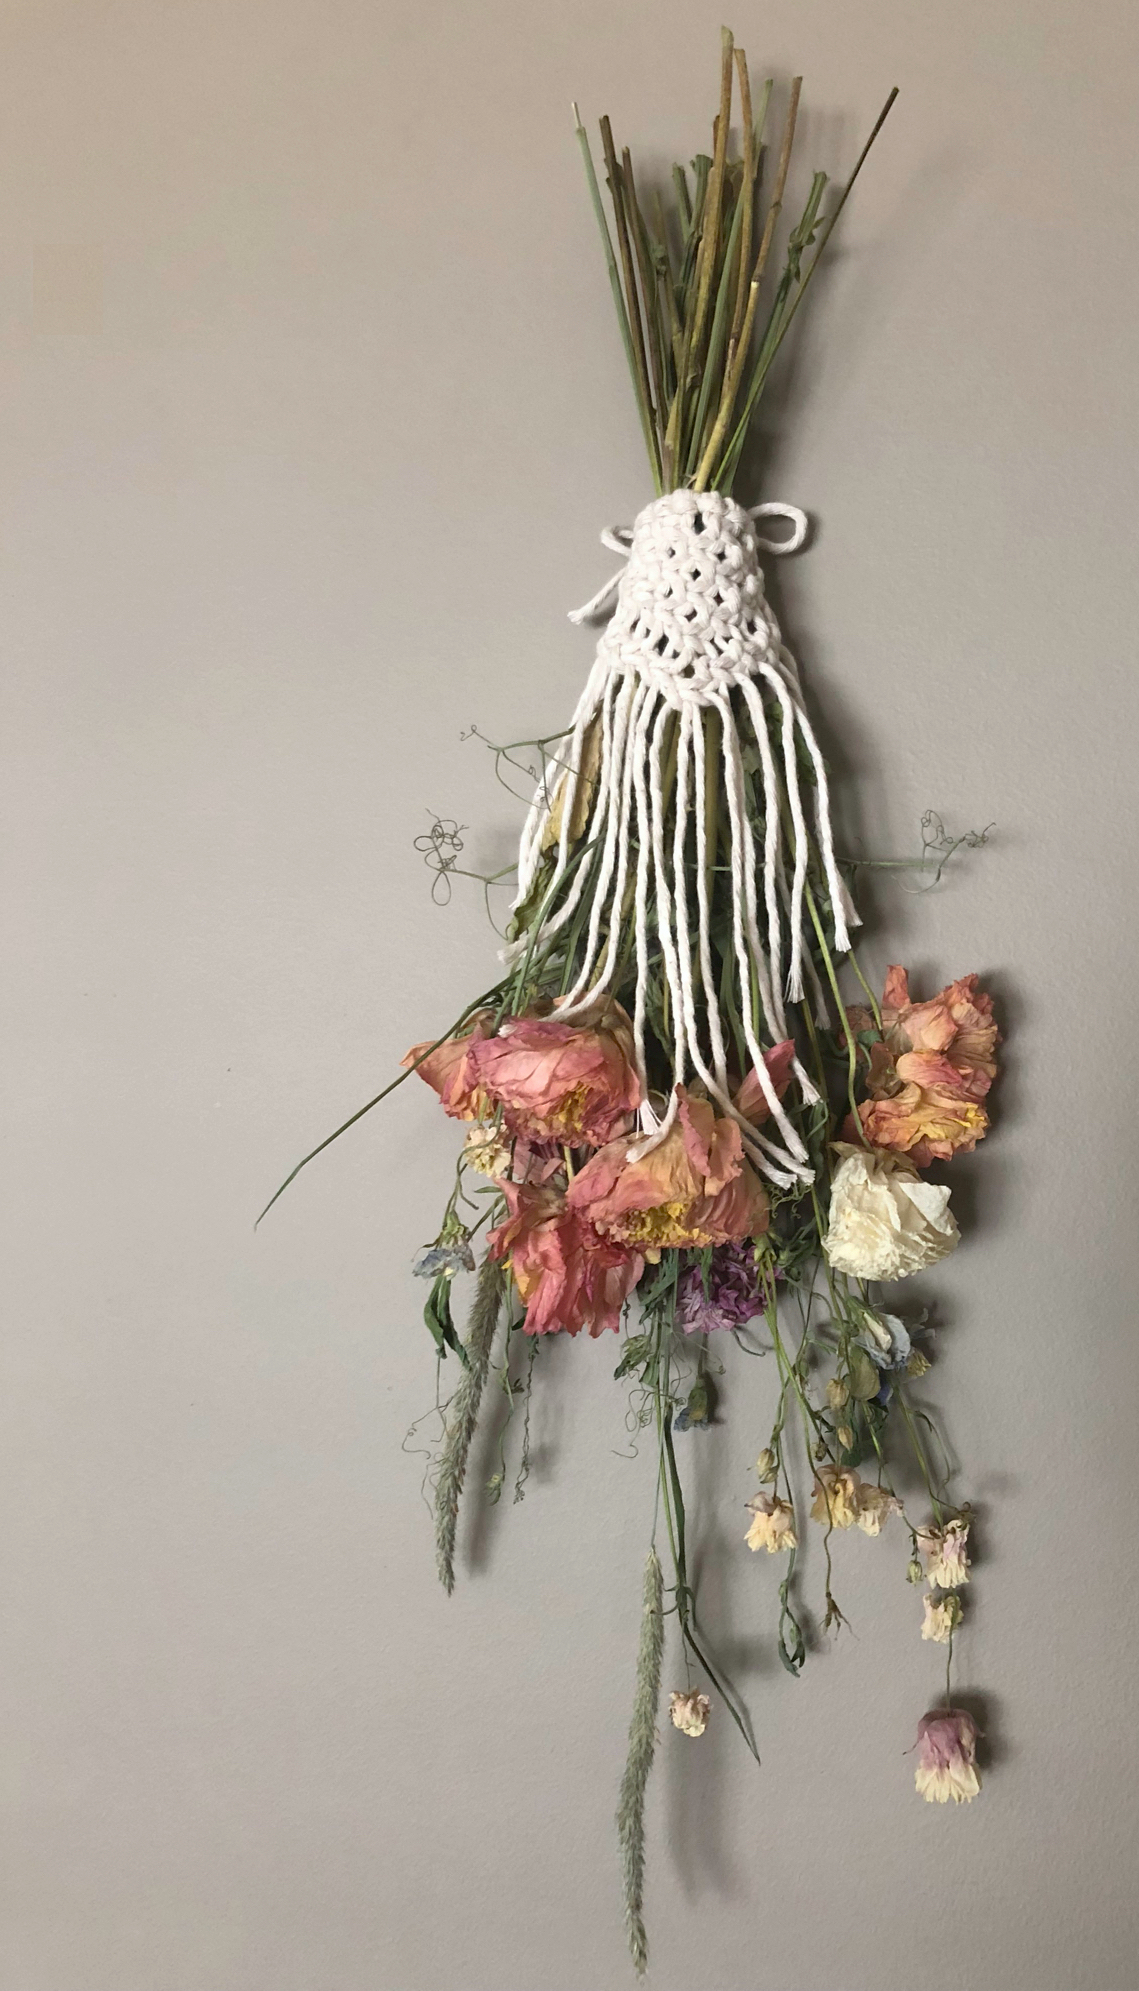 Sweet little bouquet wrap made to enhance these local dried flowers - currently lives in my living room